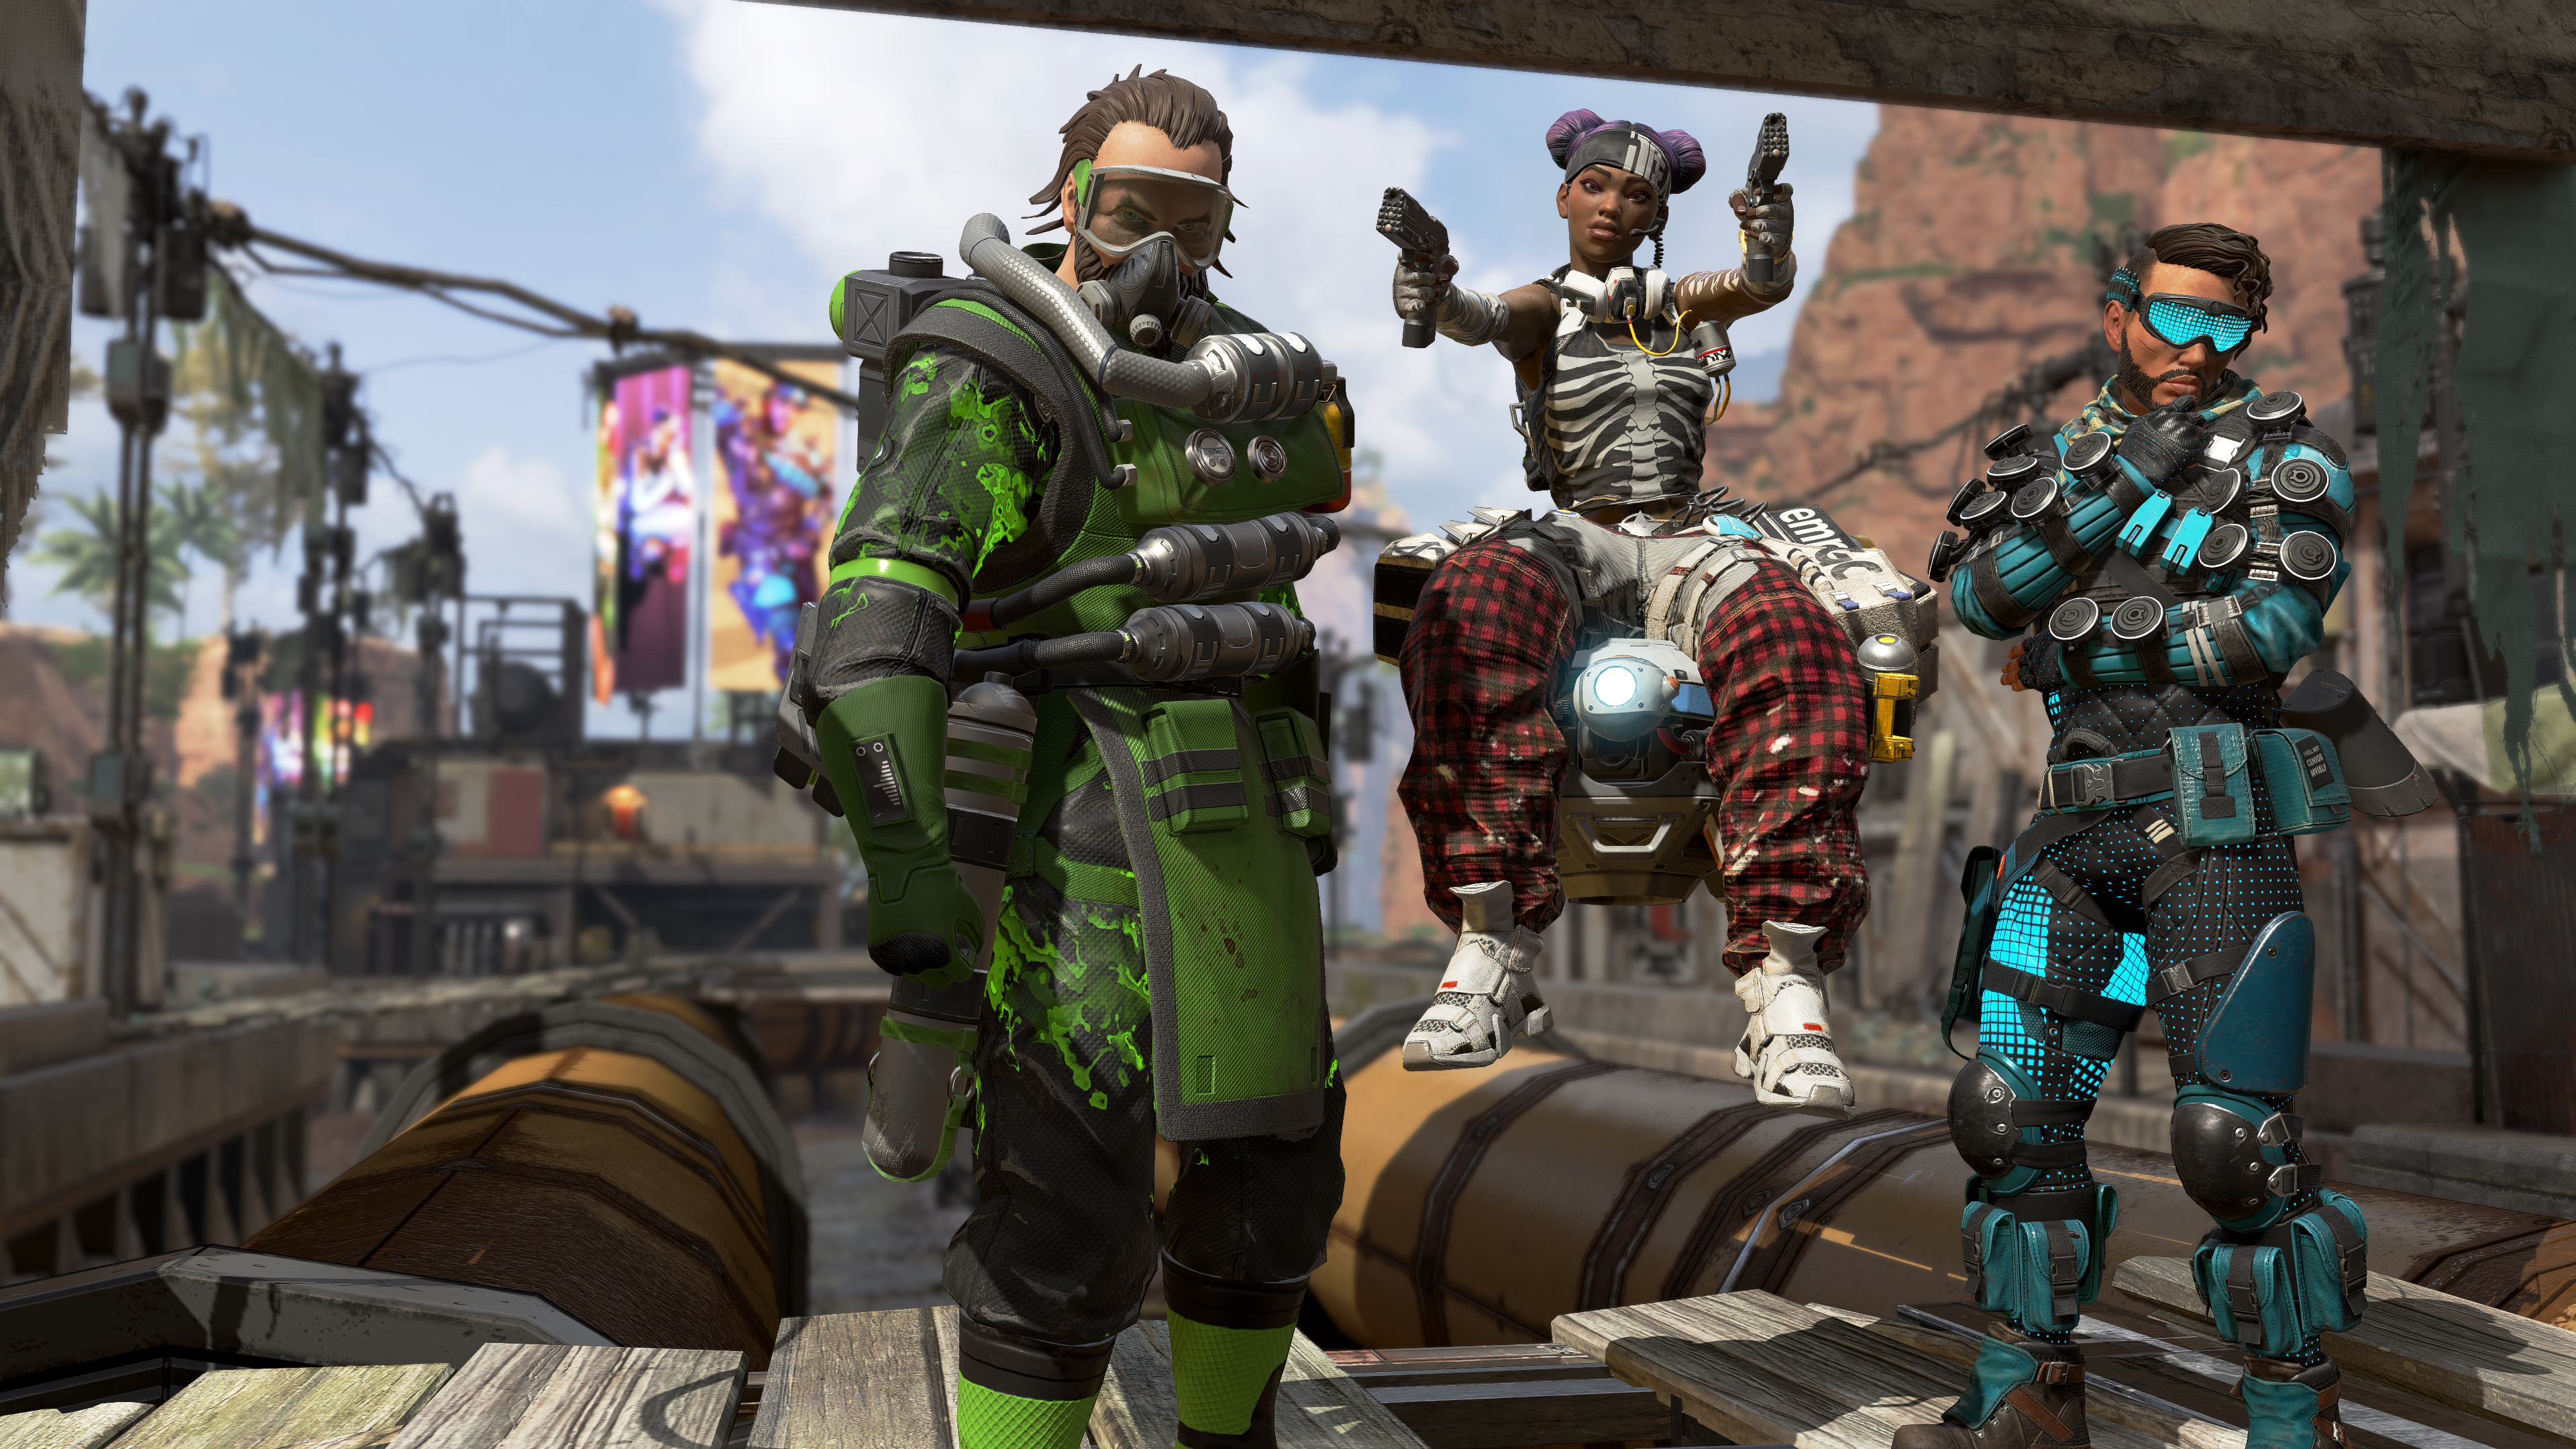 apex legends review better than fortnite in almost every way inverse - fortnite legacy controls